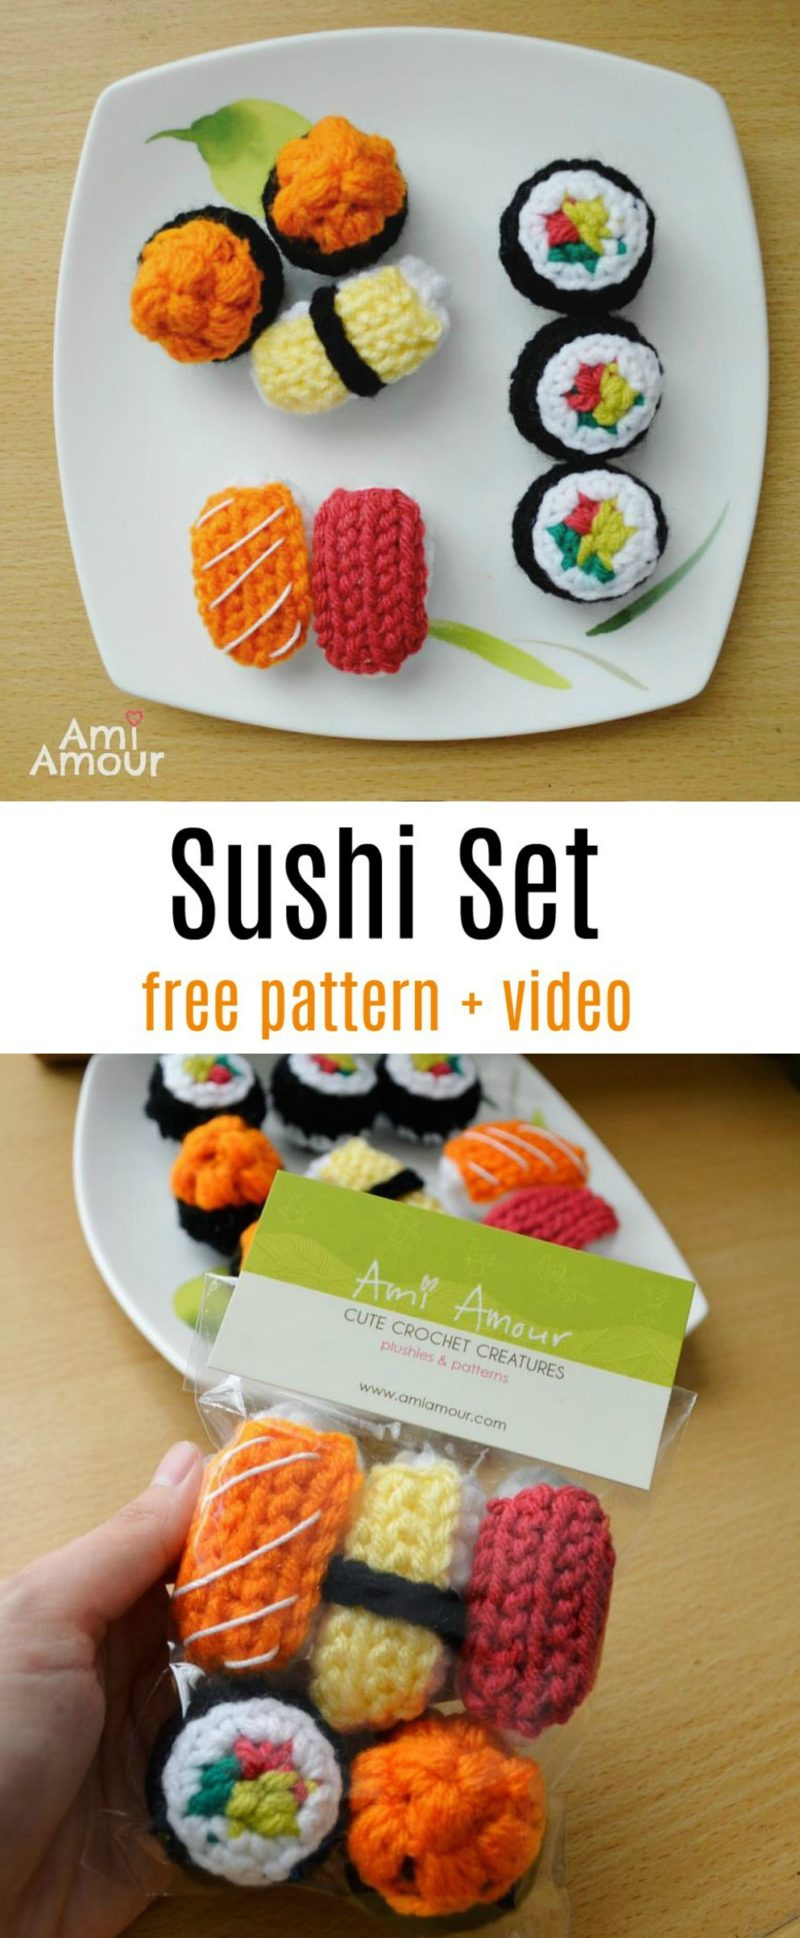 Sushi Crochet Free Pattern with Video Tutorial